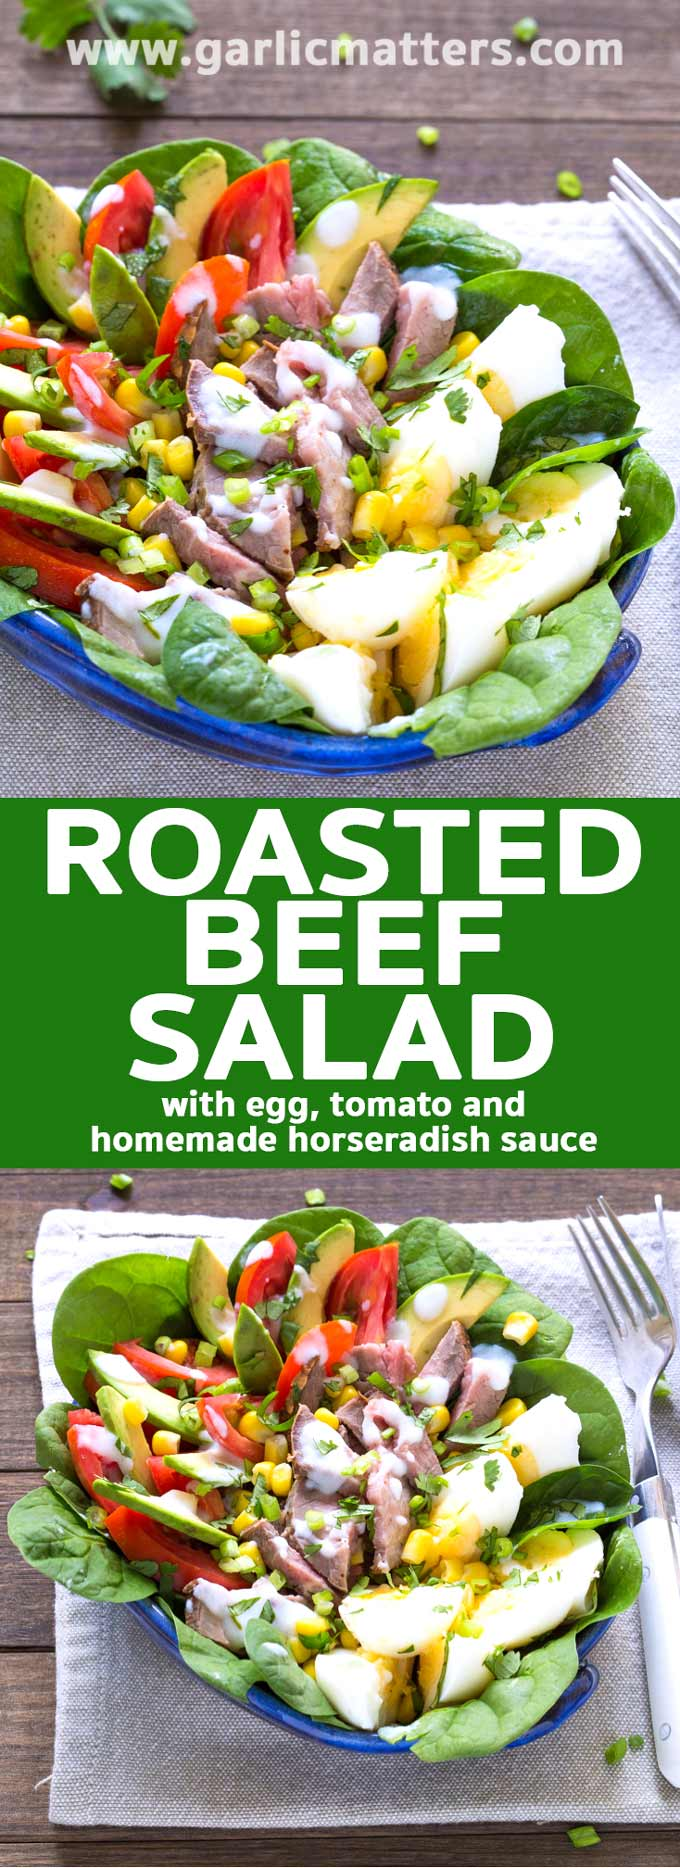 Delicious Roasted Beef Egg Horseradish Salad recipe - satisfying, easy and healthy - plus great tips for a great, homemade horseradish sauce!